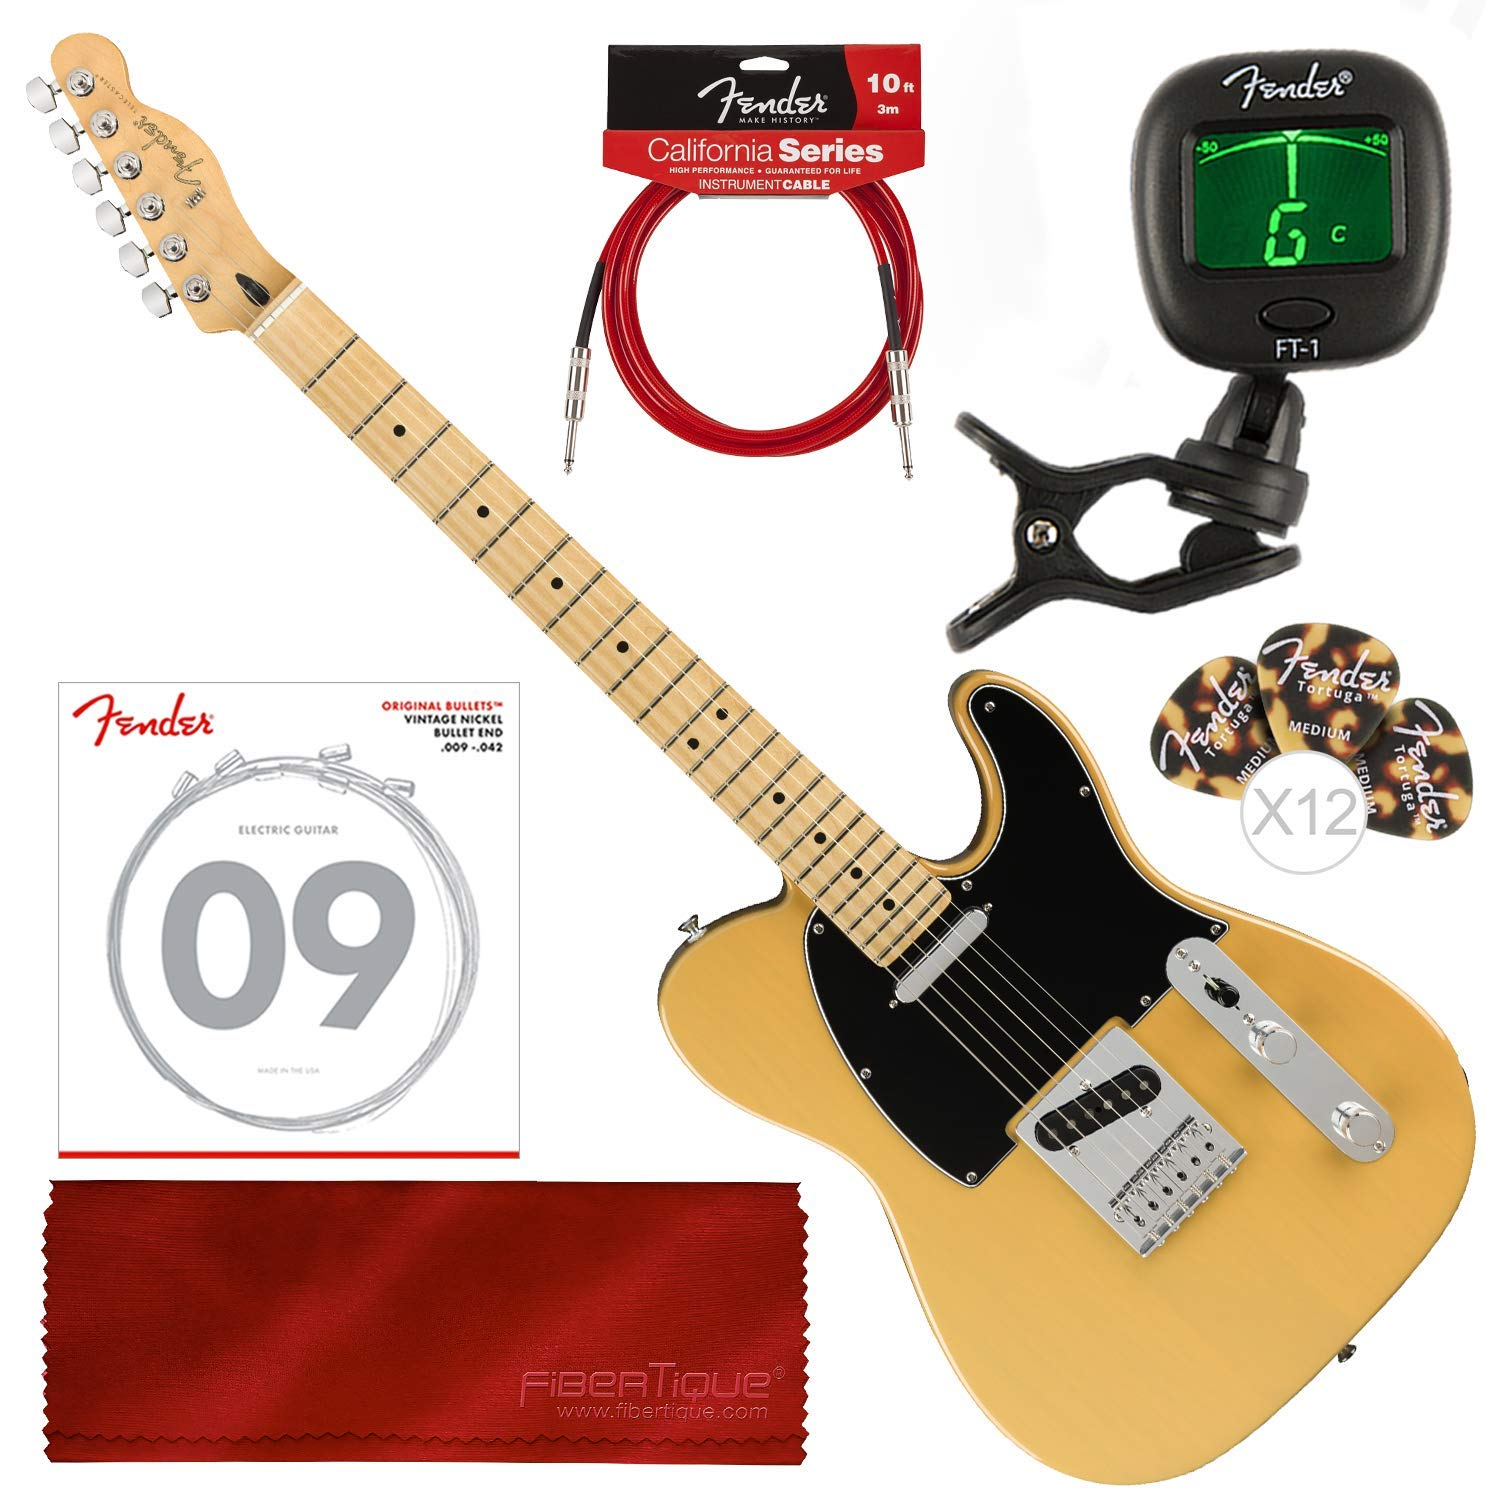 Cheap Fender Player Telecaster Electric Guitar - Maple Fingerboard - Butterscotch Blonde with Tuner and Accessory Bundle Black Friday & Cyber Monday 2019